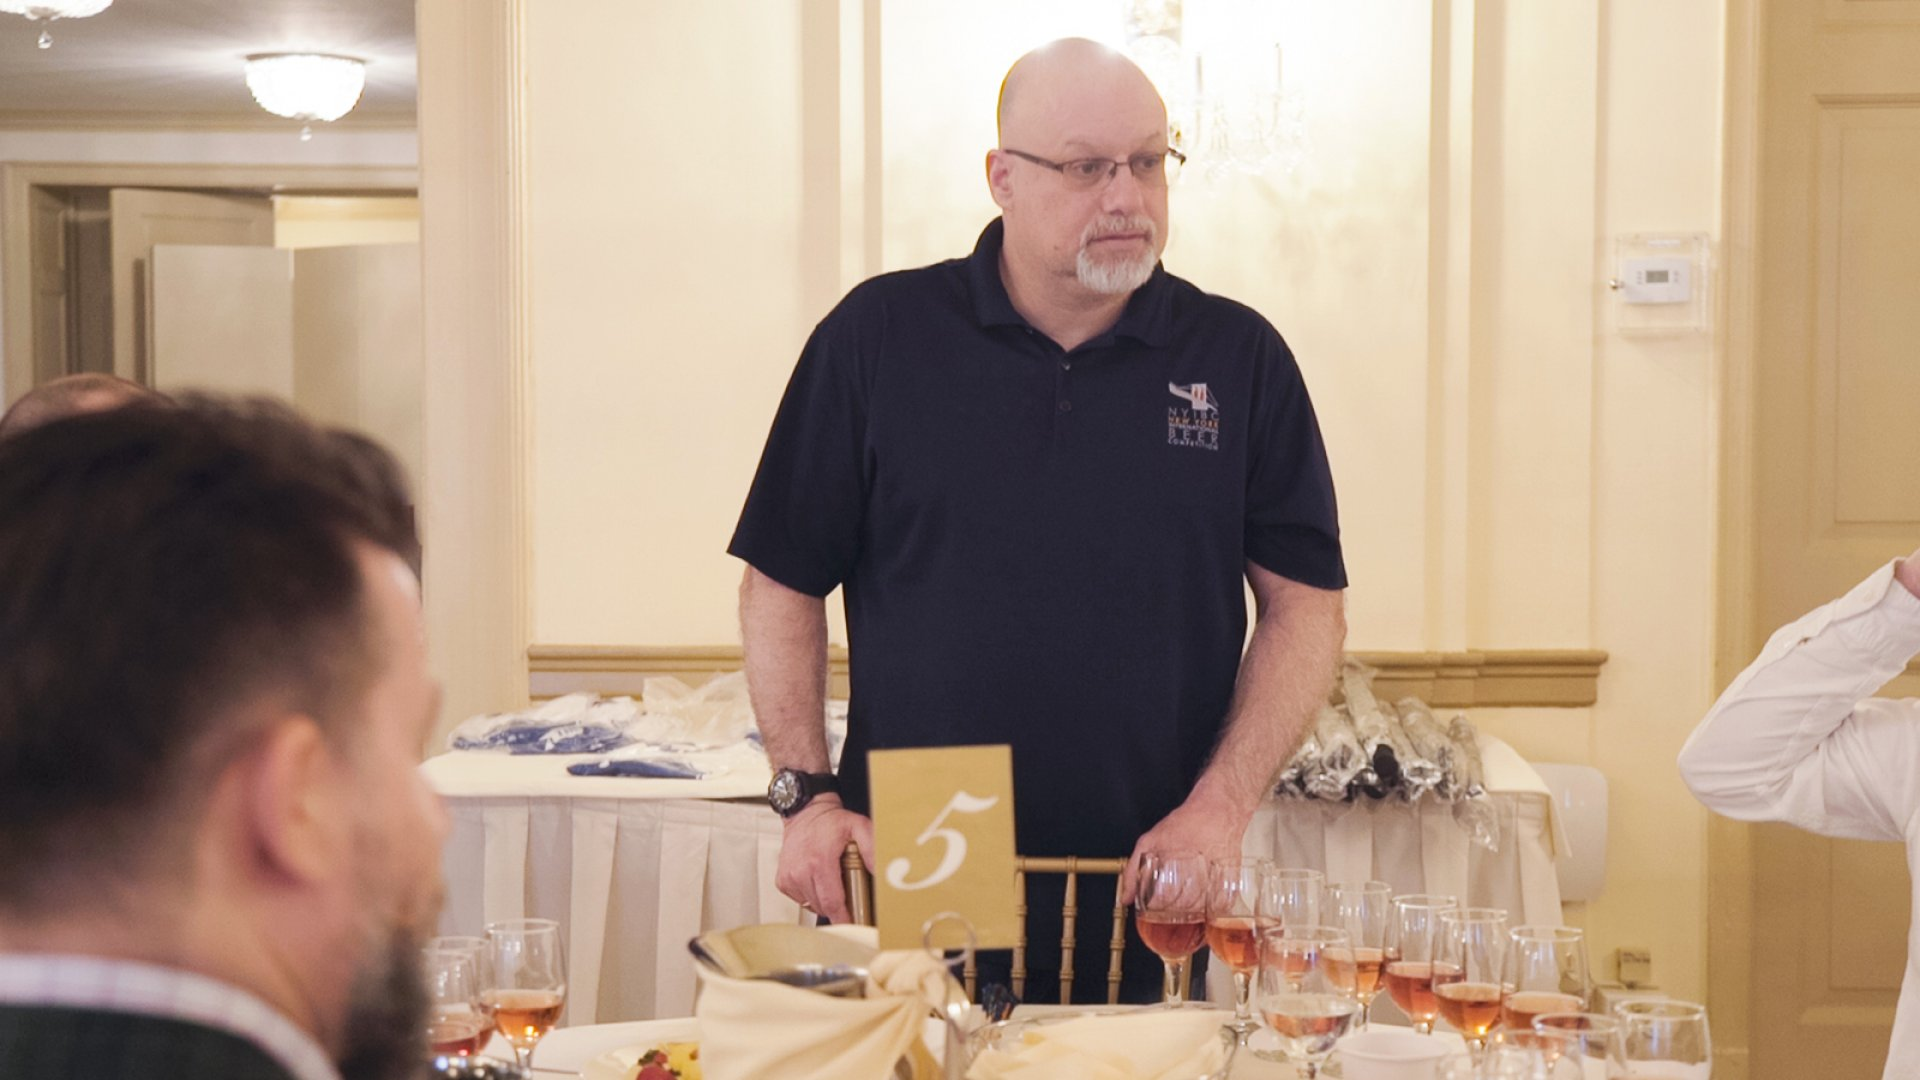 Adam Levy, founder and CEO of International Beverage Competitions, addresses a group of judges at the May 2018 New York International Wine Competition.